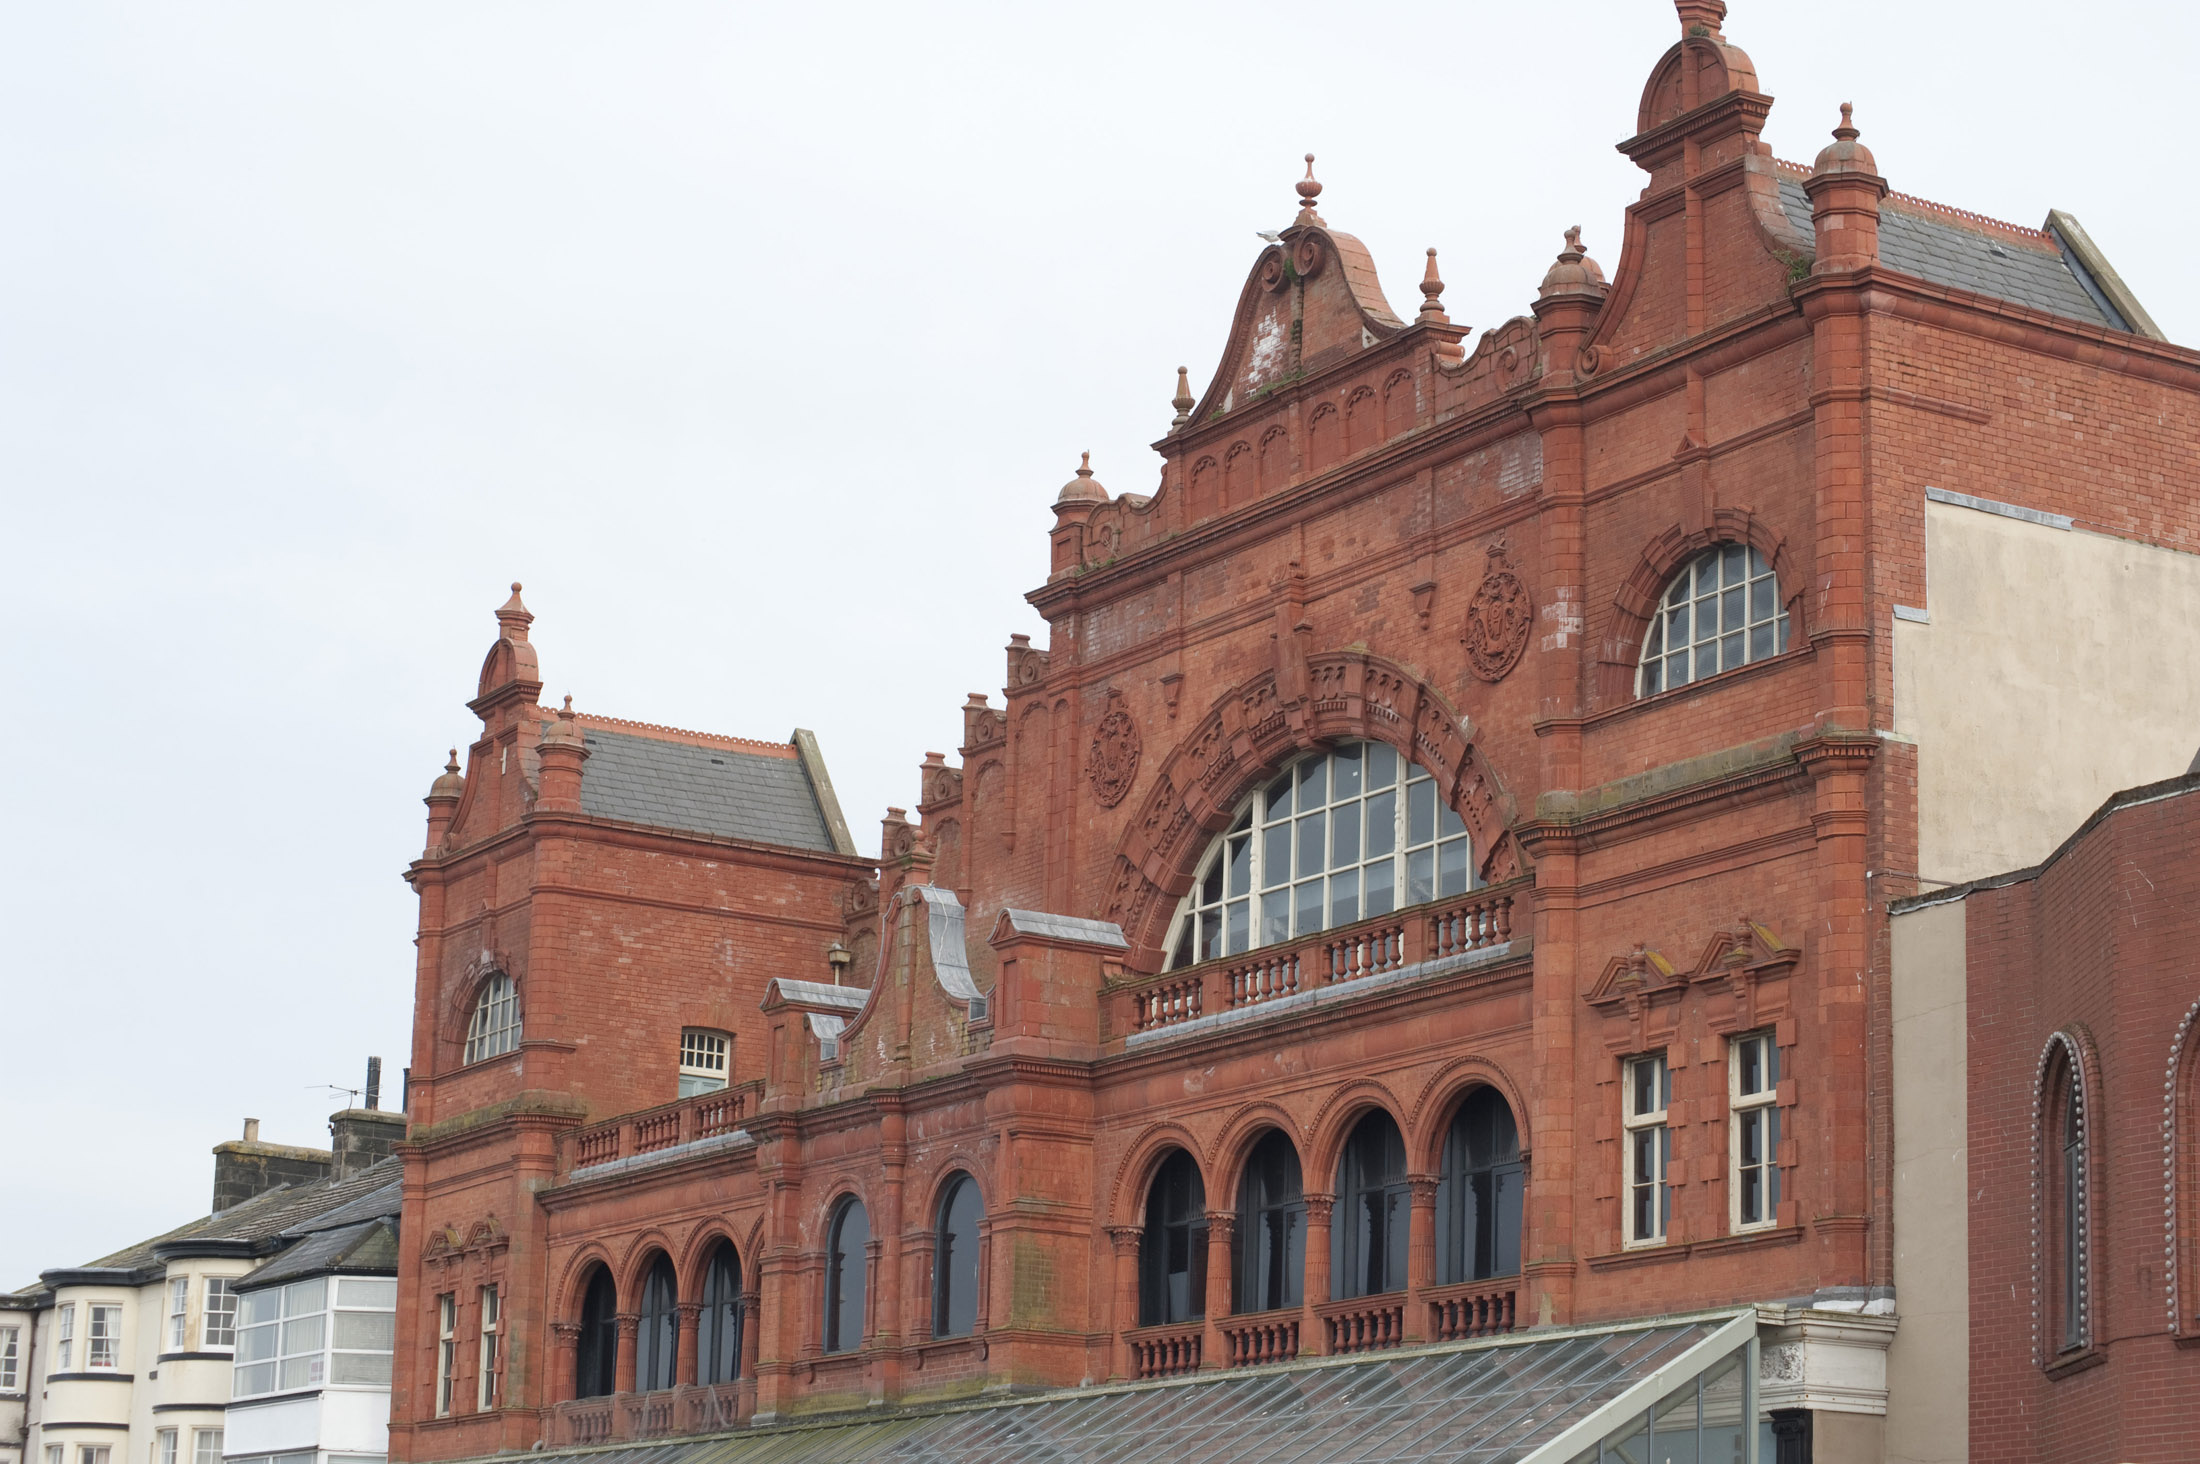 the front of the grade II listed morecambe winter gardens theatre